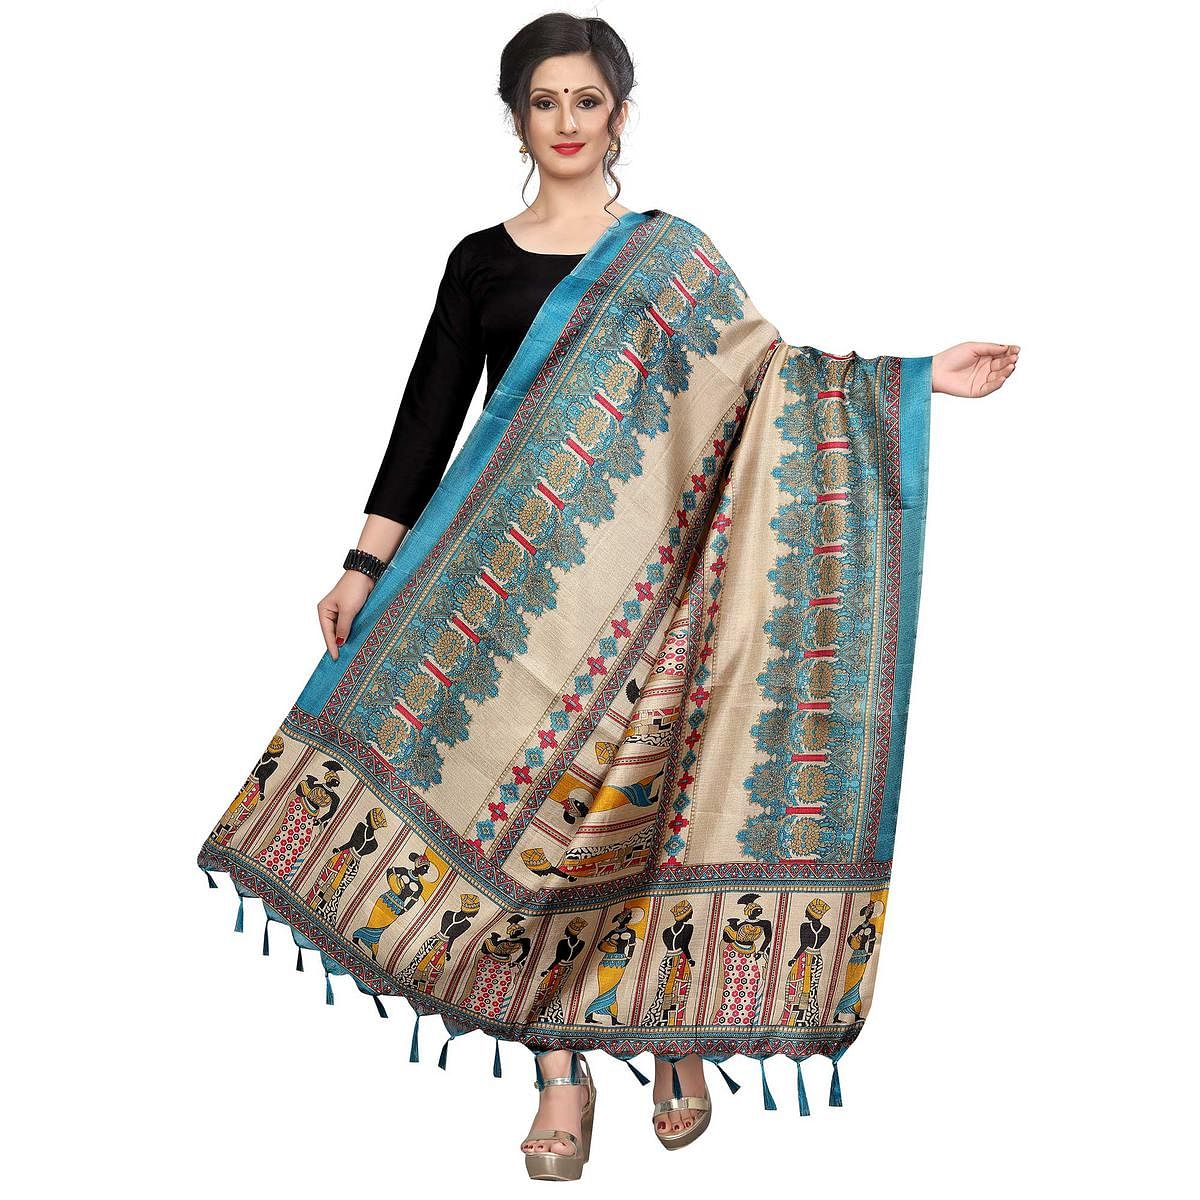 Glowing Rama Green Colored Festive Wear Printed Khadi Silk Dupatta